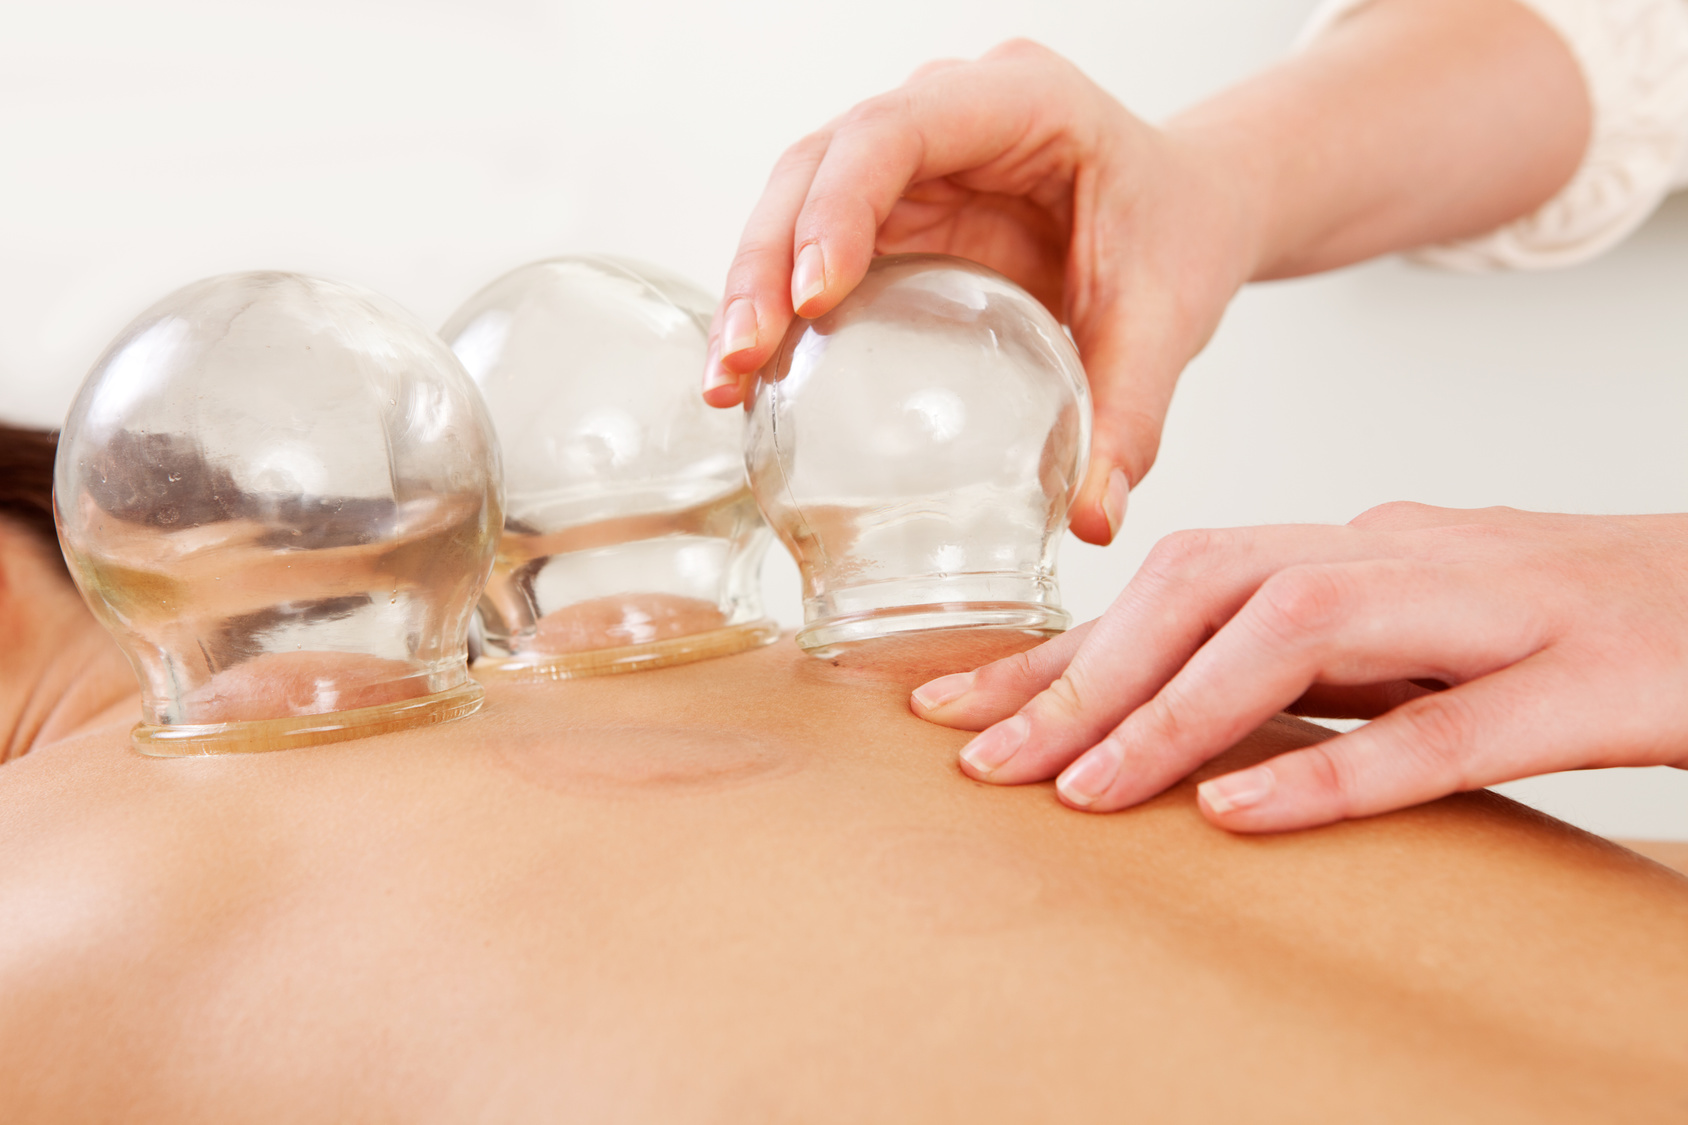 Cupping - Cupping is a technique that involves glass cups and a flame. By placing a flame quickly into a glass cup before placing the cup on the skin, a vacuum gets created which pulls the skin into the cup. This suction pulls impurities from the skin and brings space in the fascia layer. Cupping is used to create blood circulation in cases of pain and tightness. It is also used to remove impurities in cases of coughs and colds so that the body is able to heal quicker.